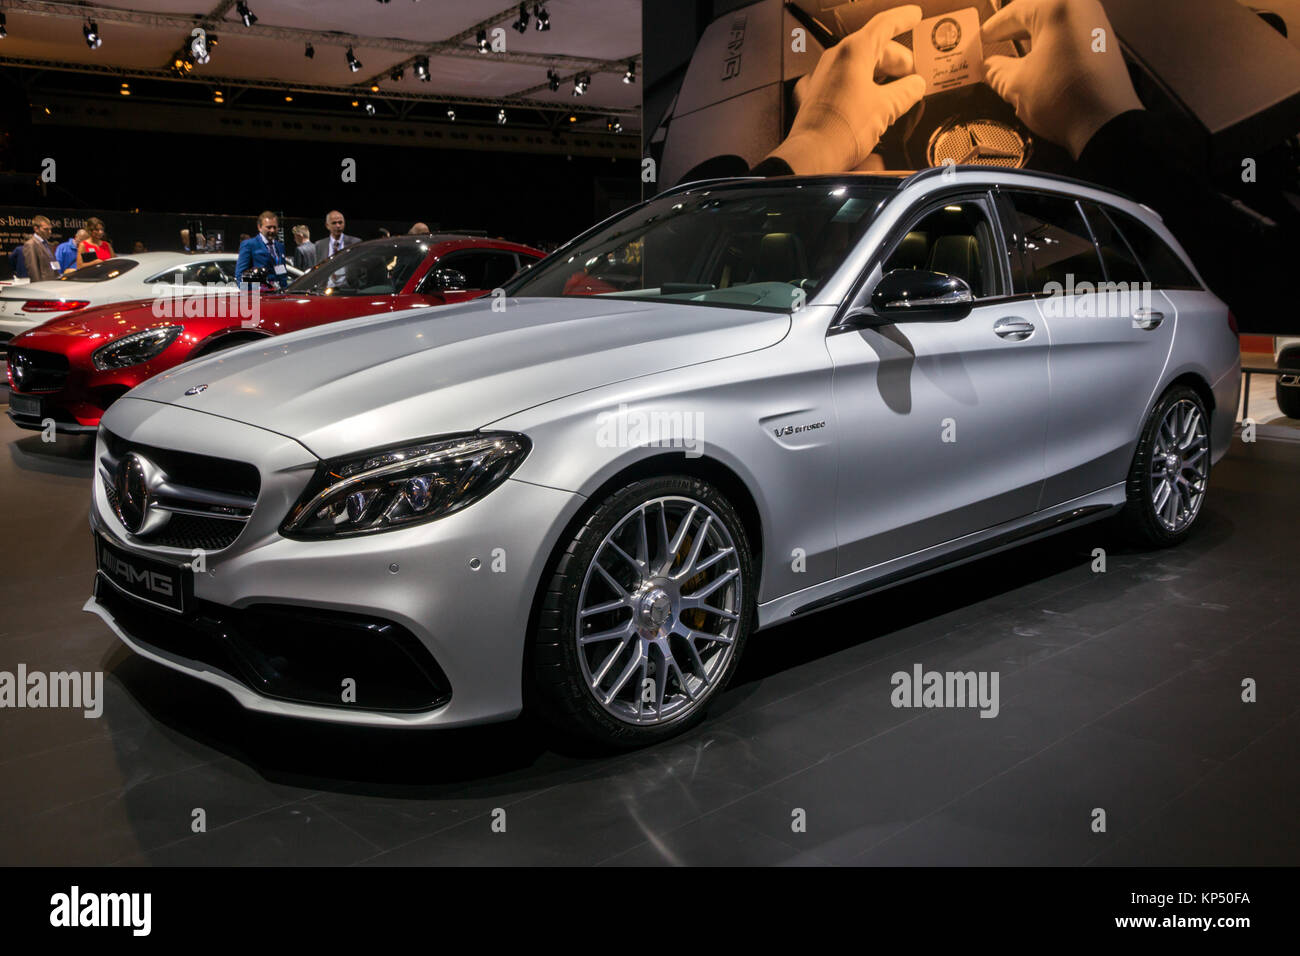 Mercedes C 63 Amg Stockfotos & Mercedes C 63 Amg Bilder Alamy